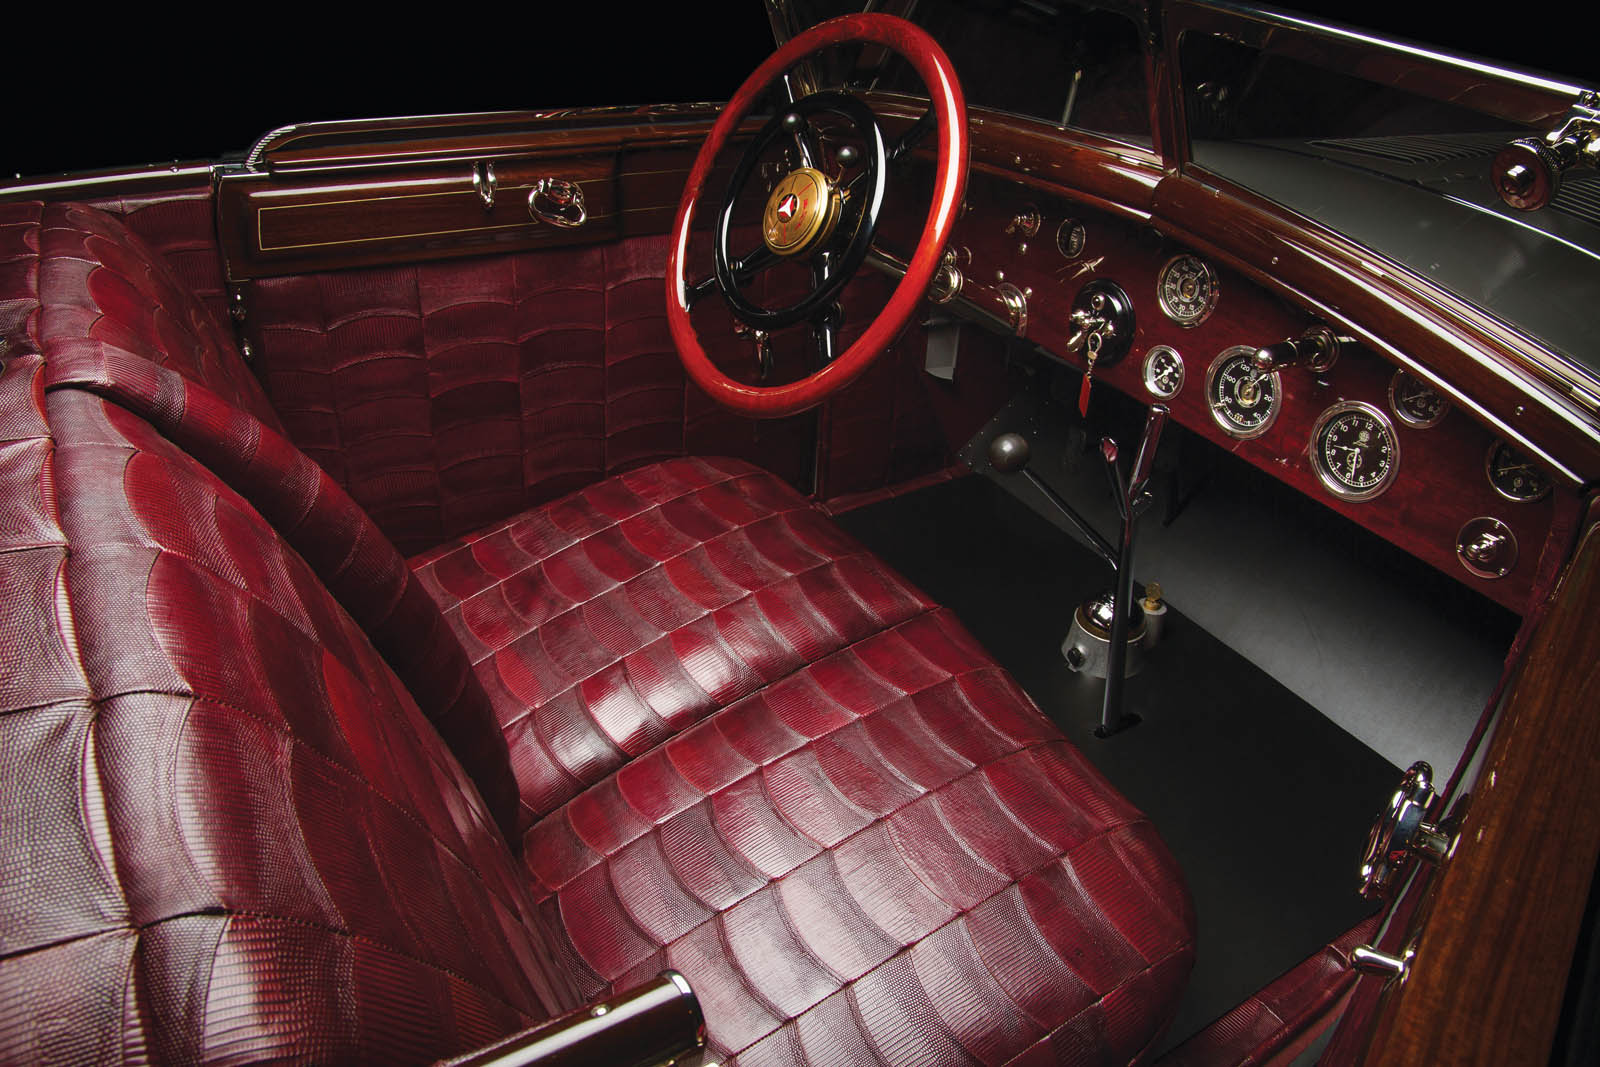 Mercedes-Benz 680S Torpedo Roadster 1928 in auction (11)